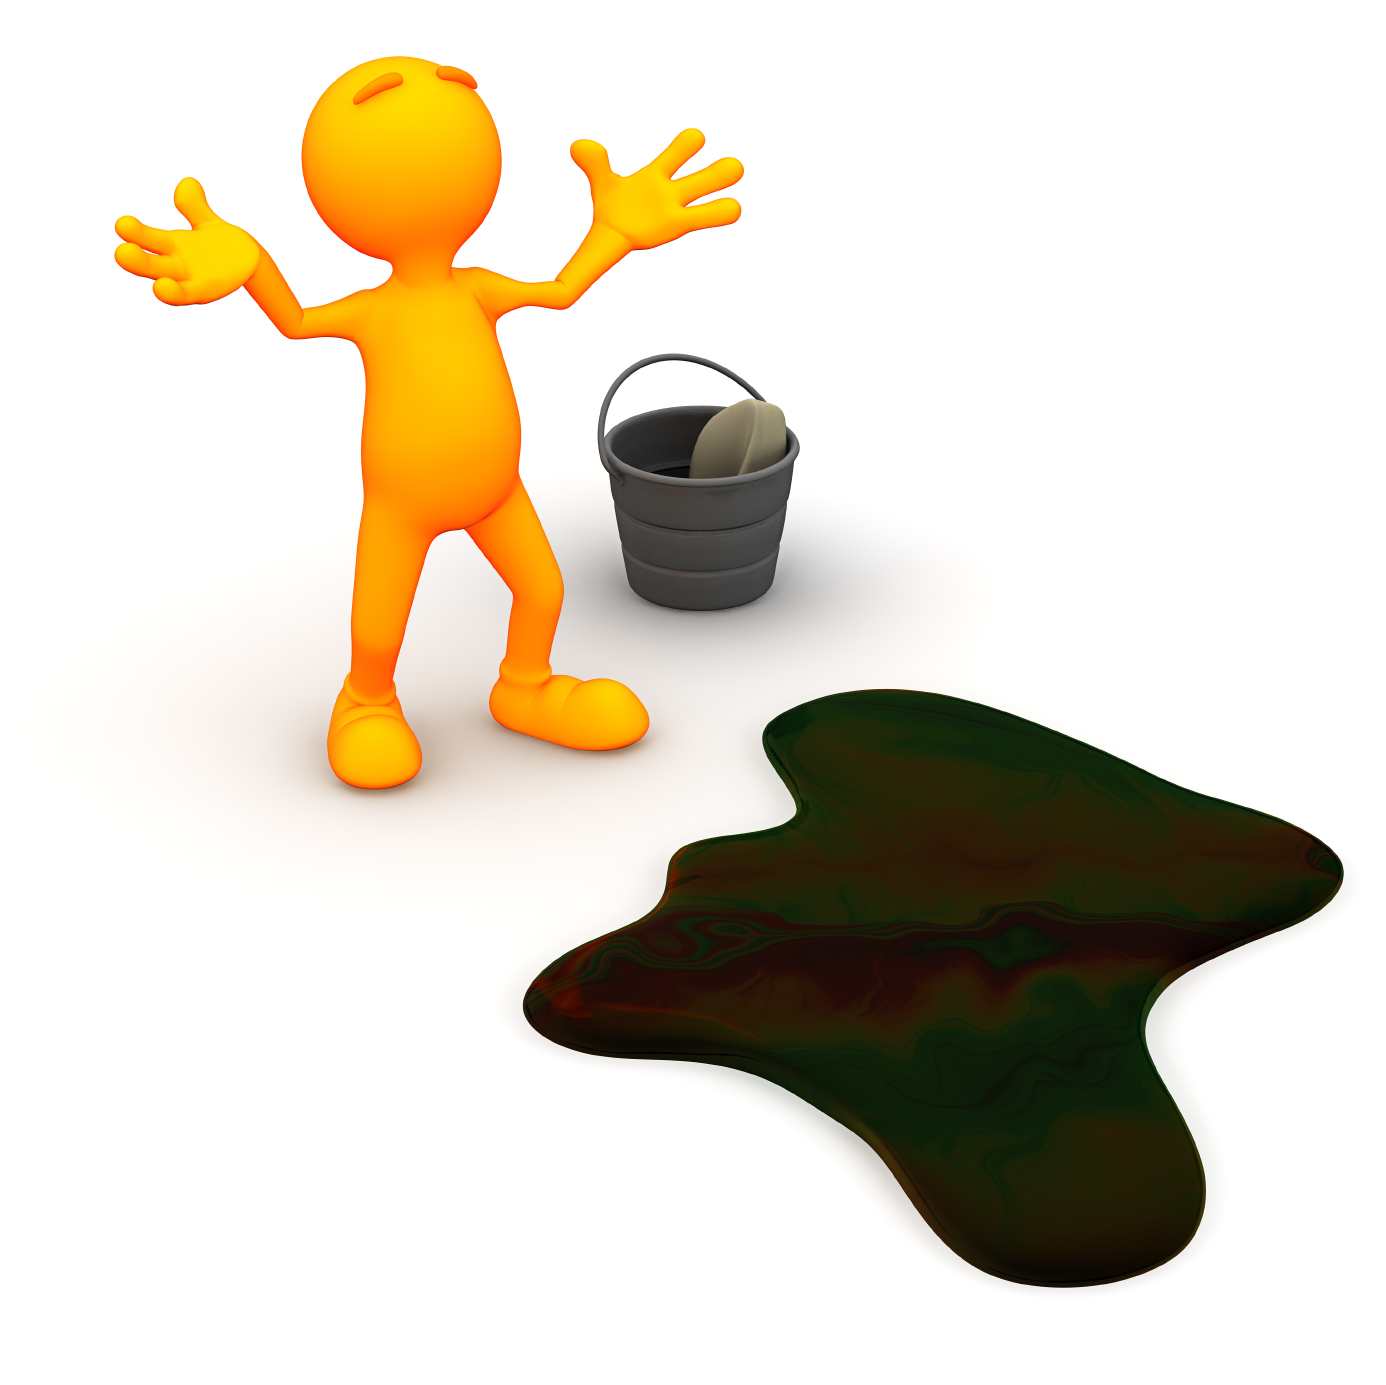 Oil clipart spillage On sites to spills